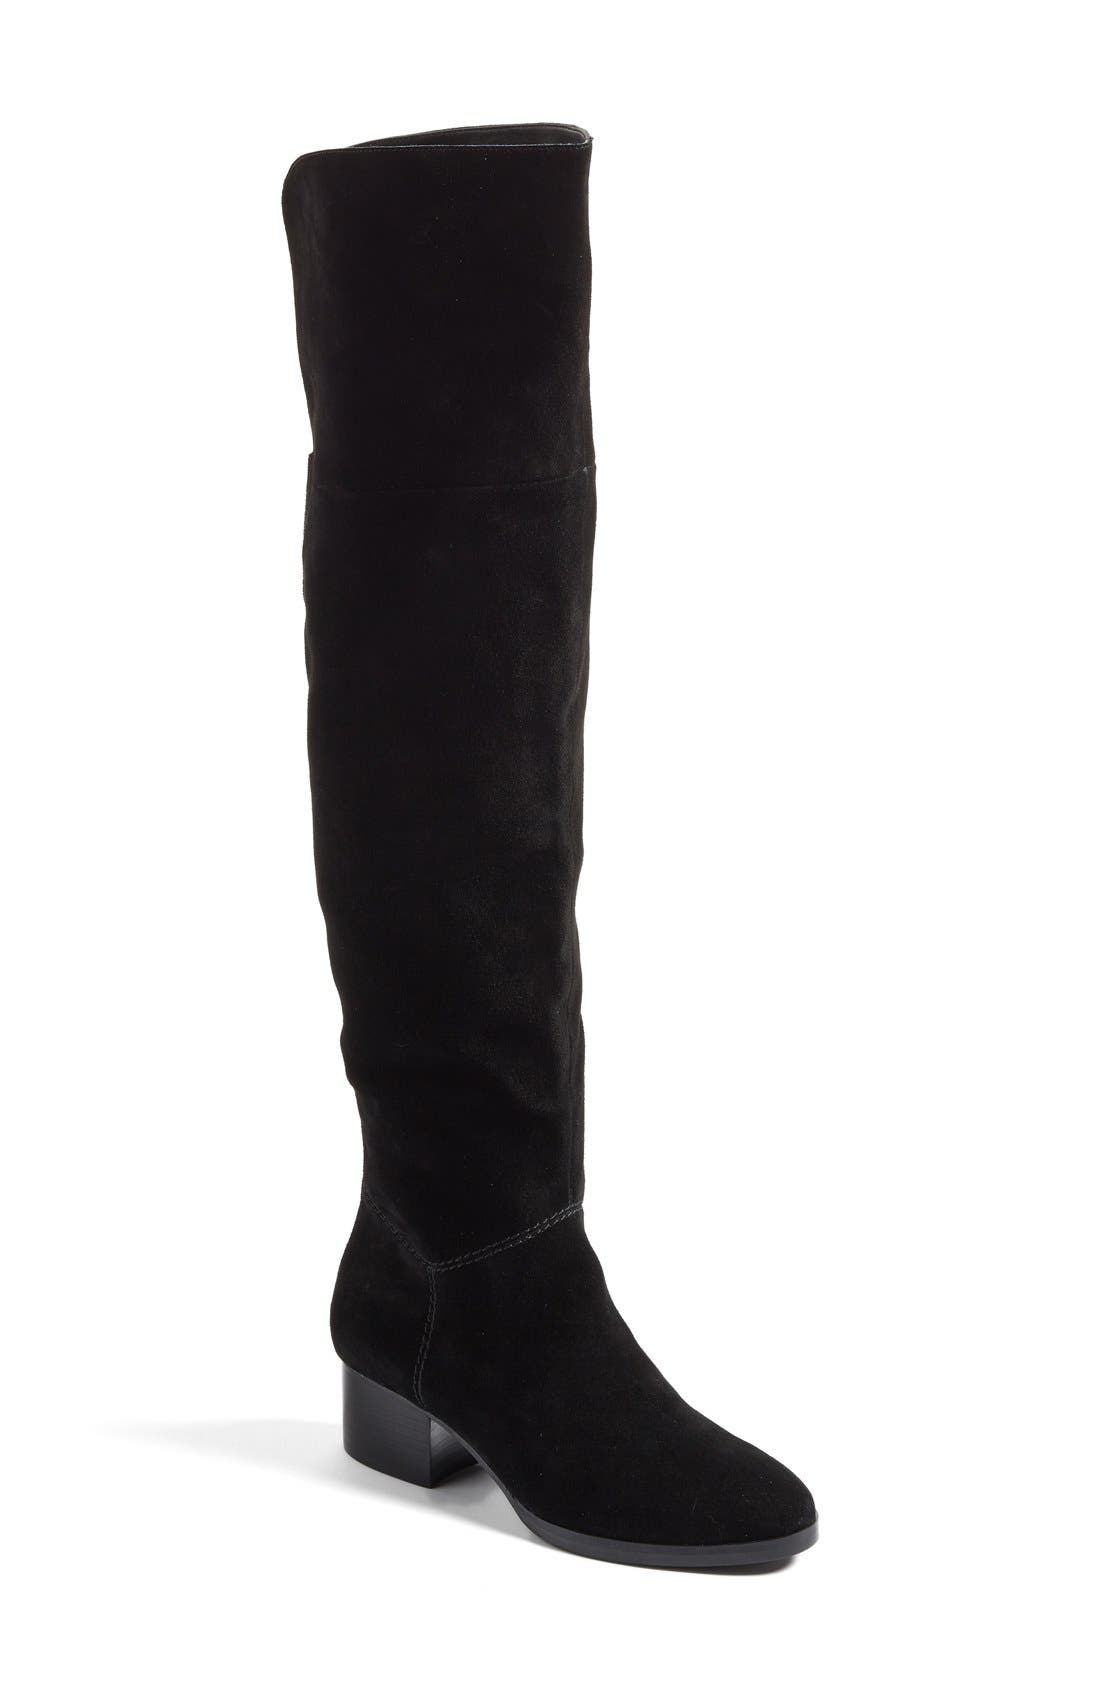 Alternate Image 1 Selected - BP. Tessie Tall Boot (Women)